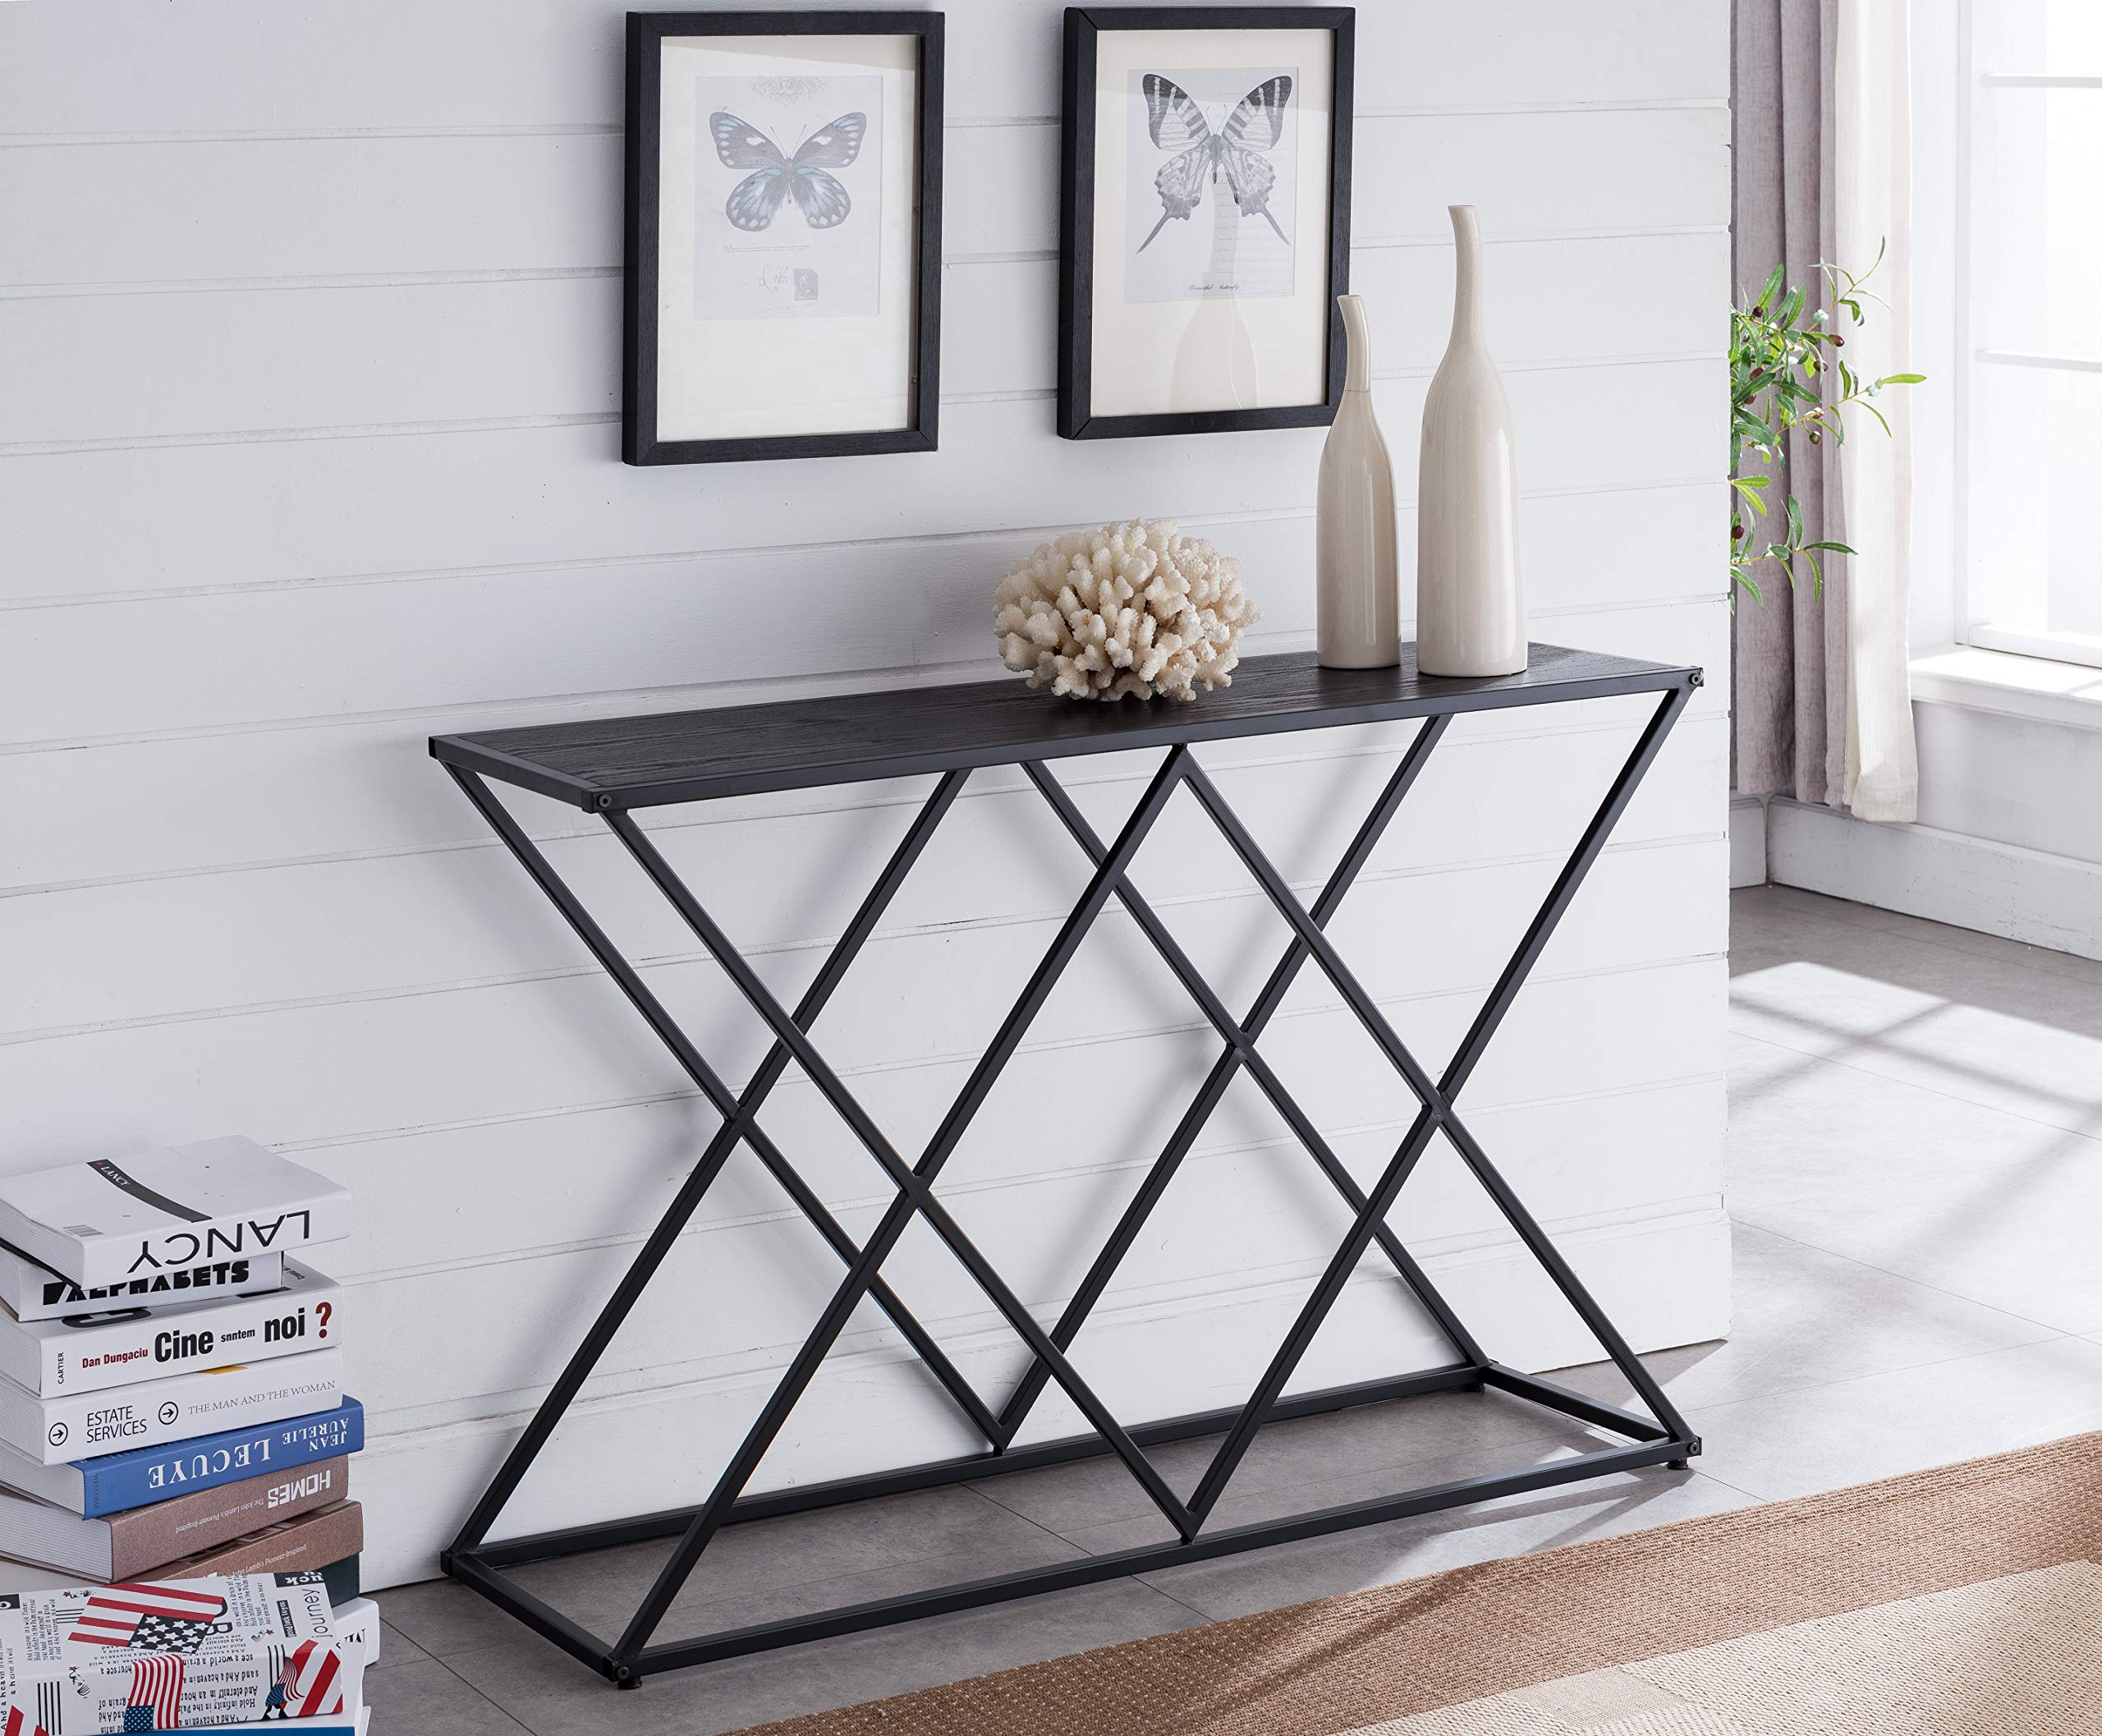 Kings Brand Furniture - Calvert Modern Sofa/Entryway Console Table, Black by Kings Brand Furniture